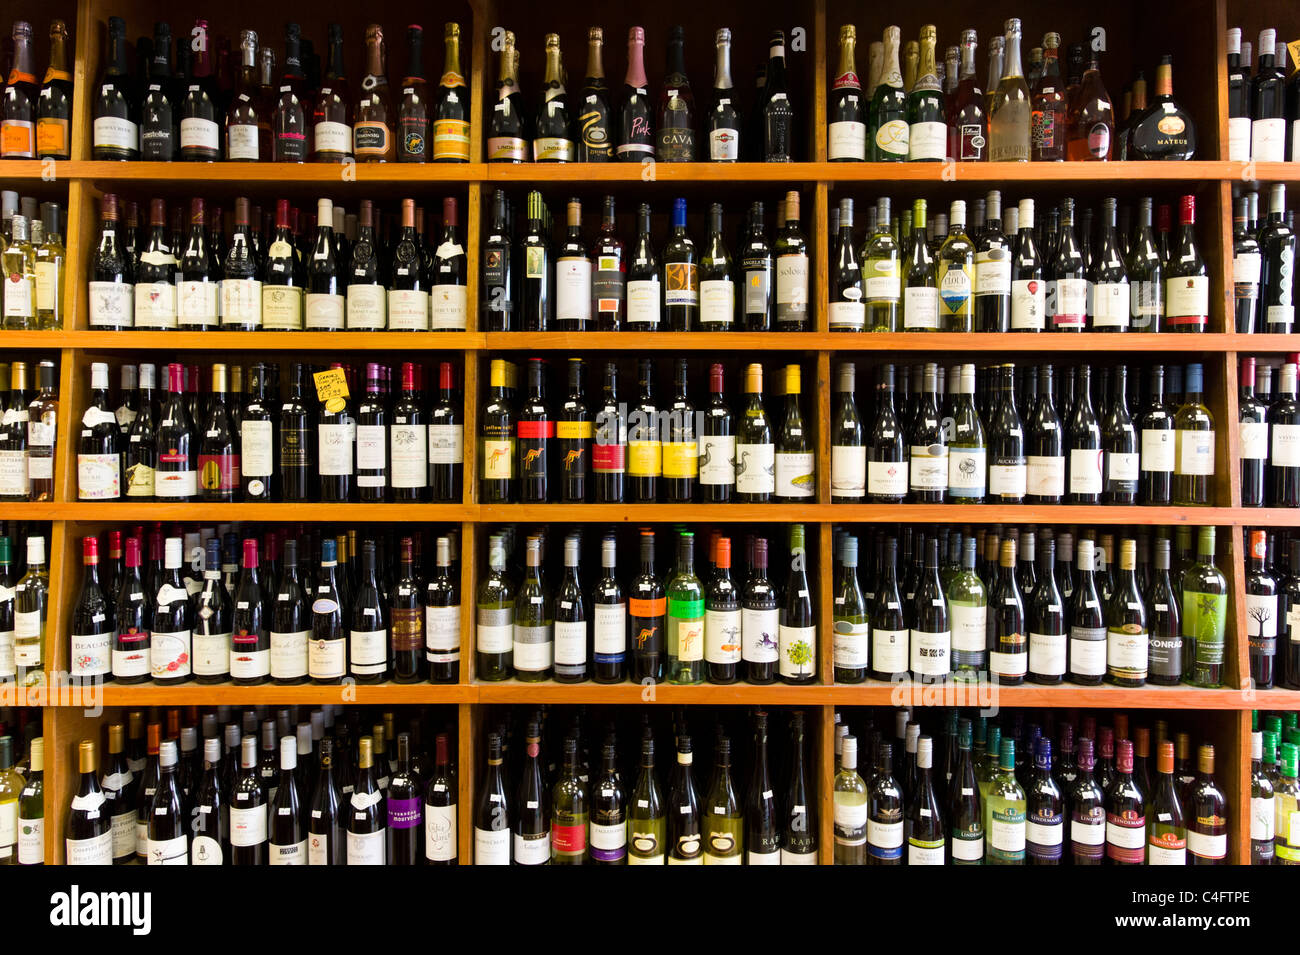 Rows of wine bottles in local independent off licence, London, UK - Stock Image